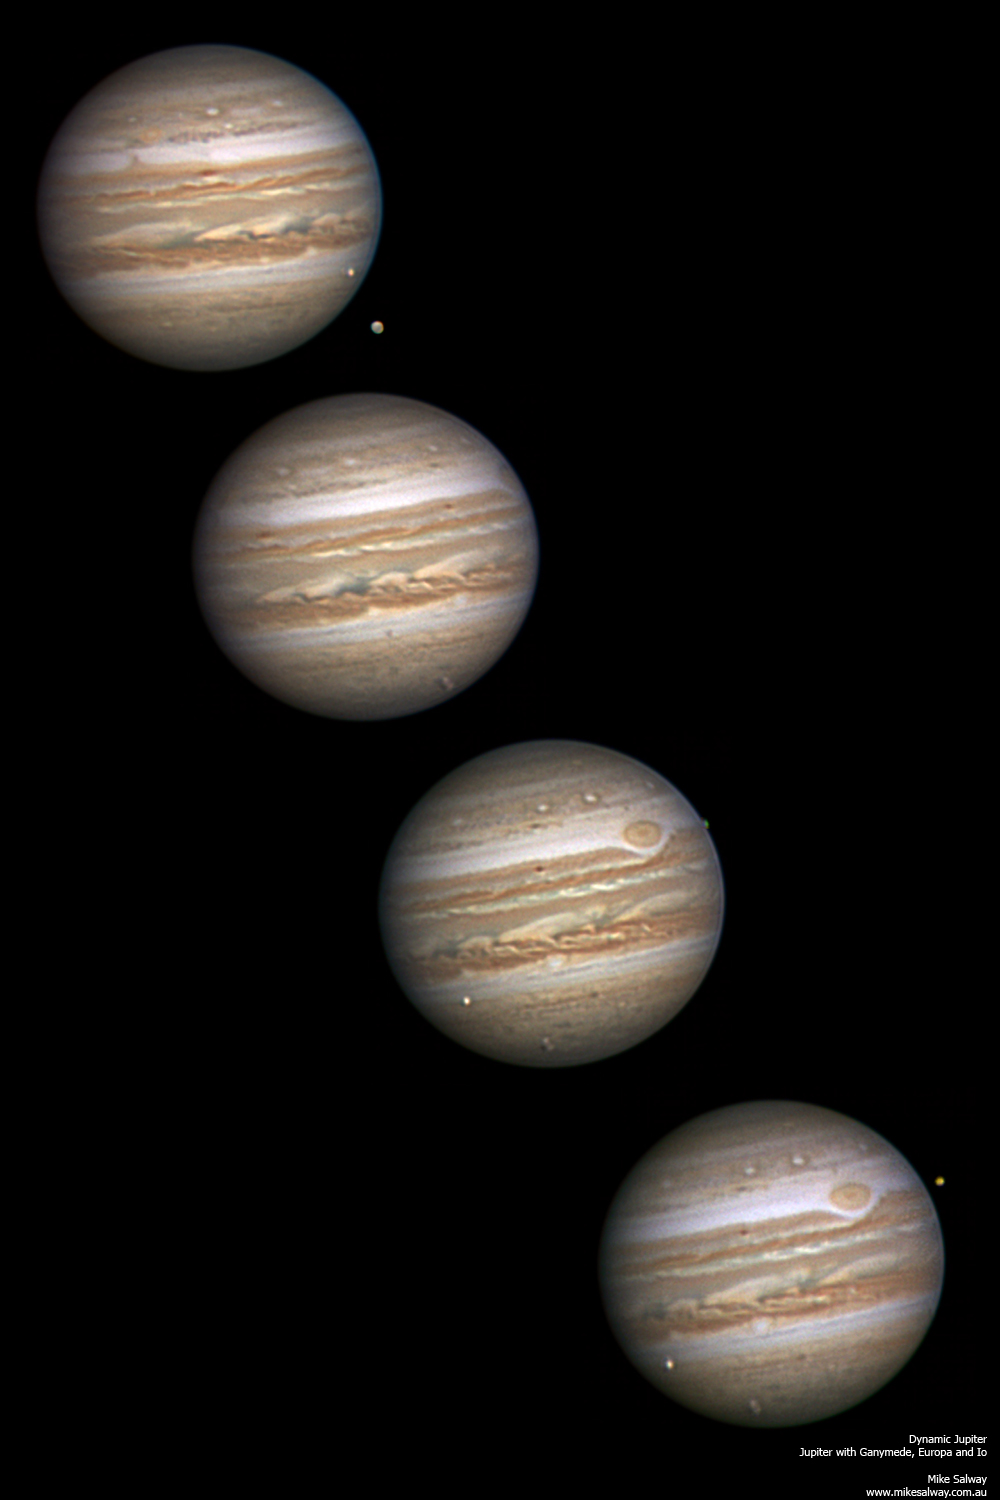 Dynamic Jupiter - click image to download full size (350kb)